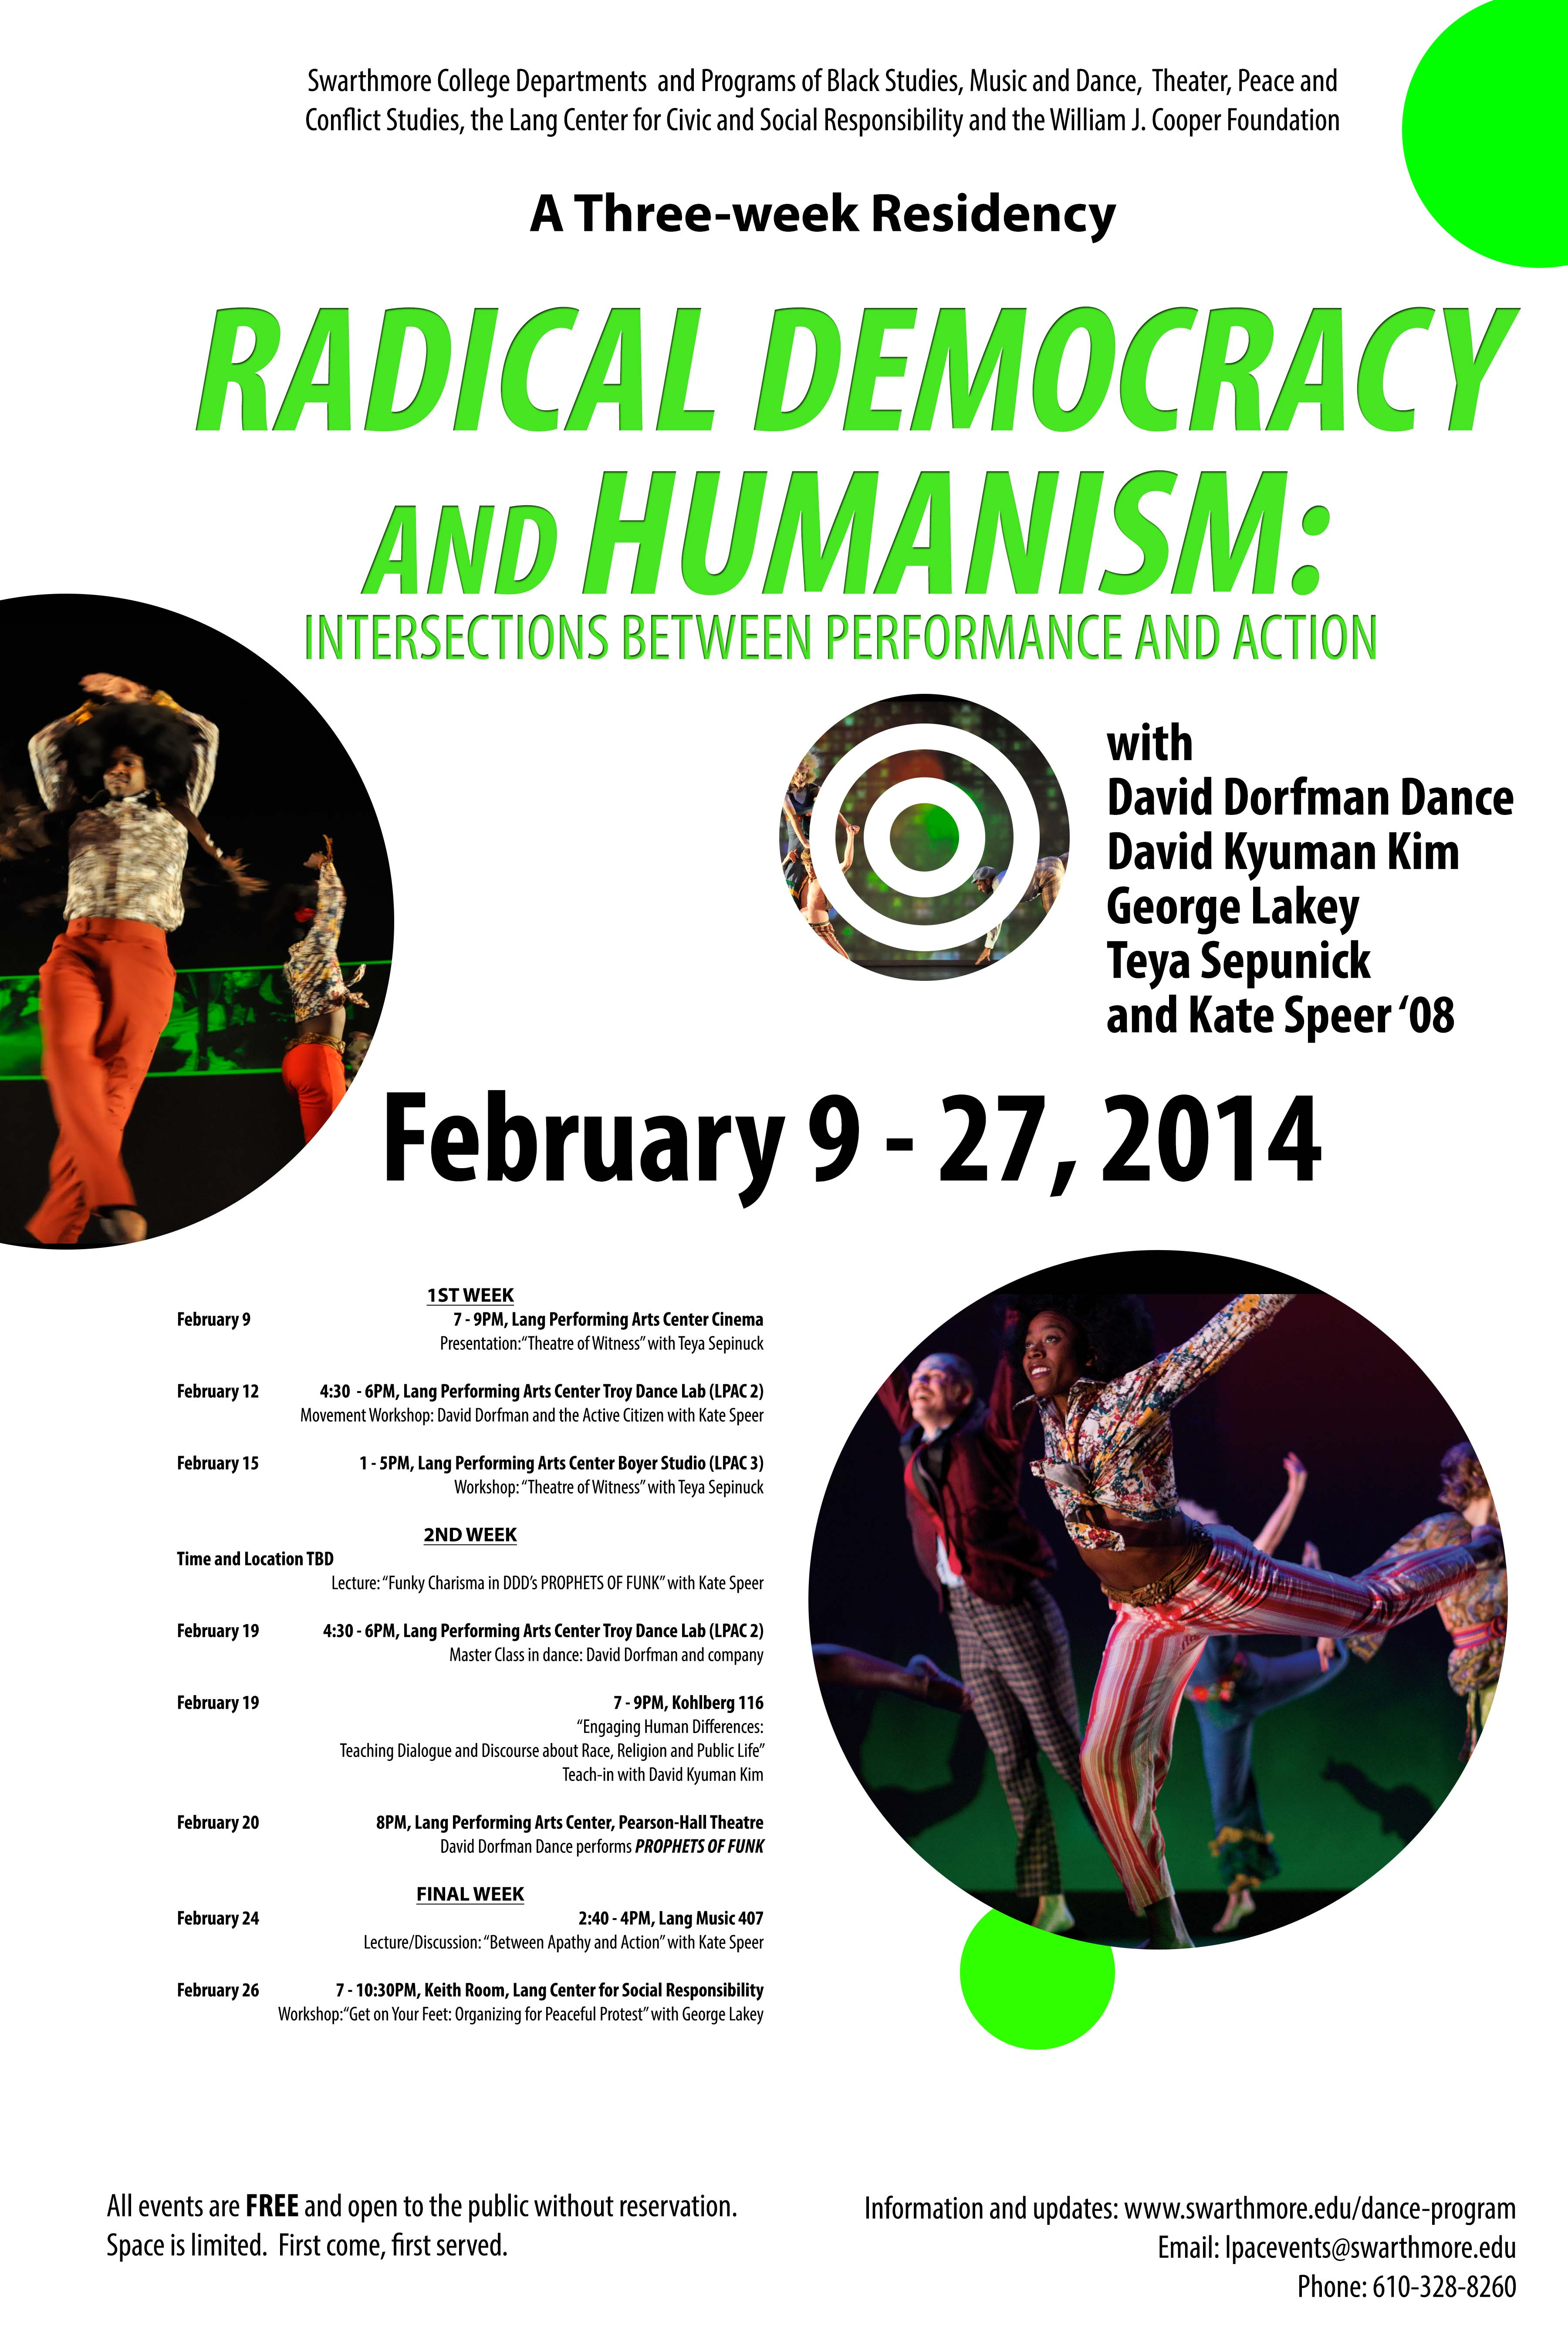 Radical Democracy and Humanism flyer